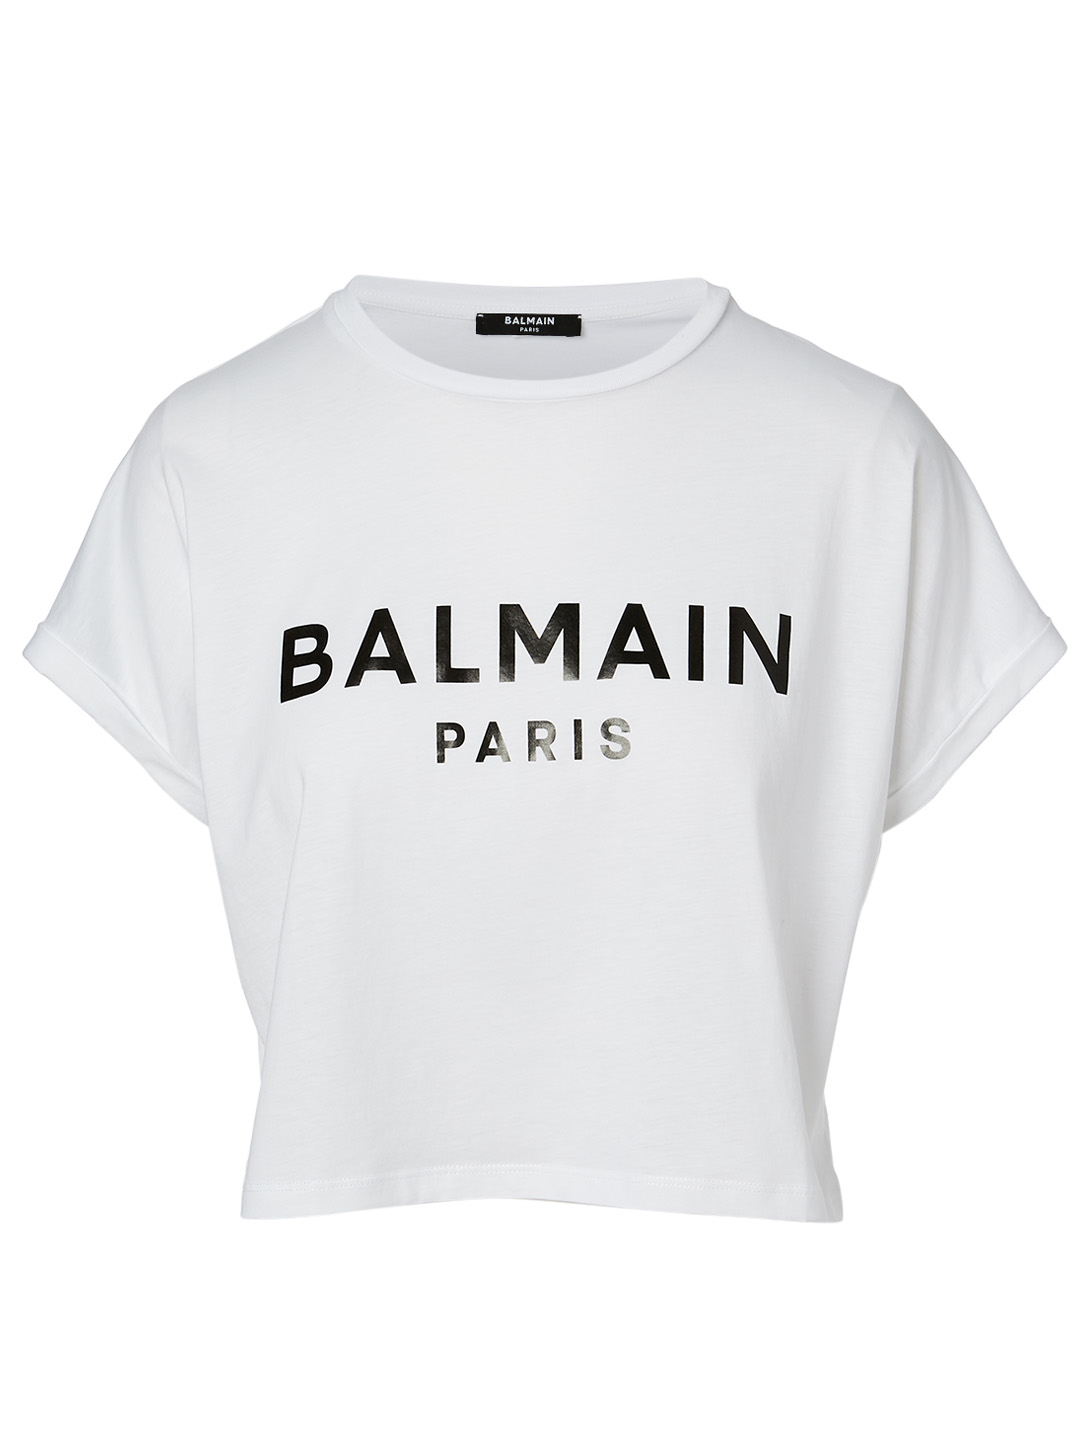 BALMAIN Cotton Cropped T-Shirt With Logo Women's White